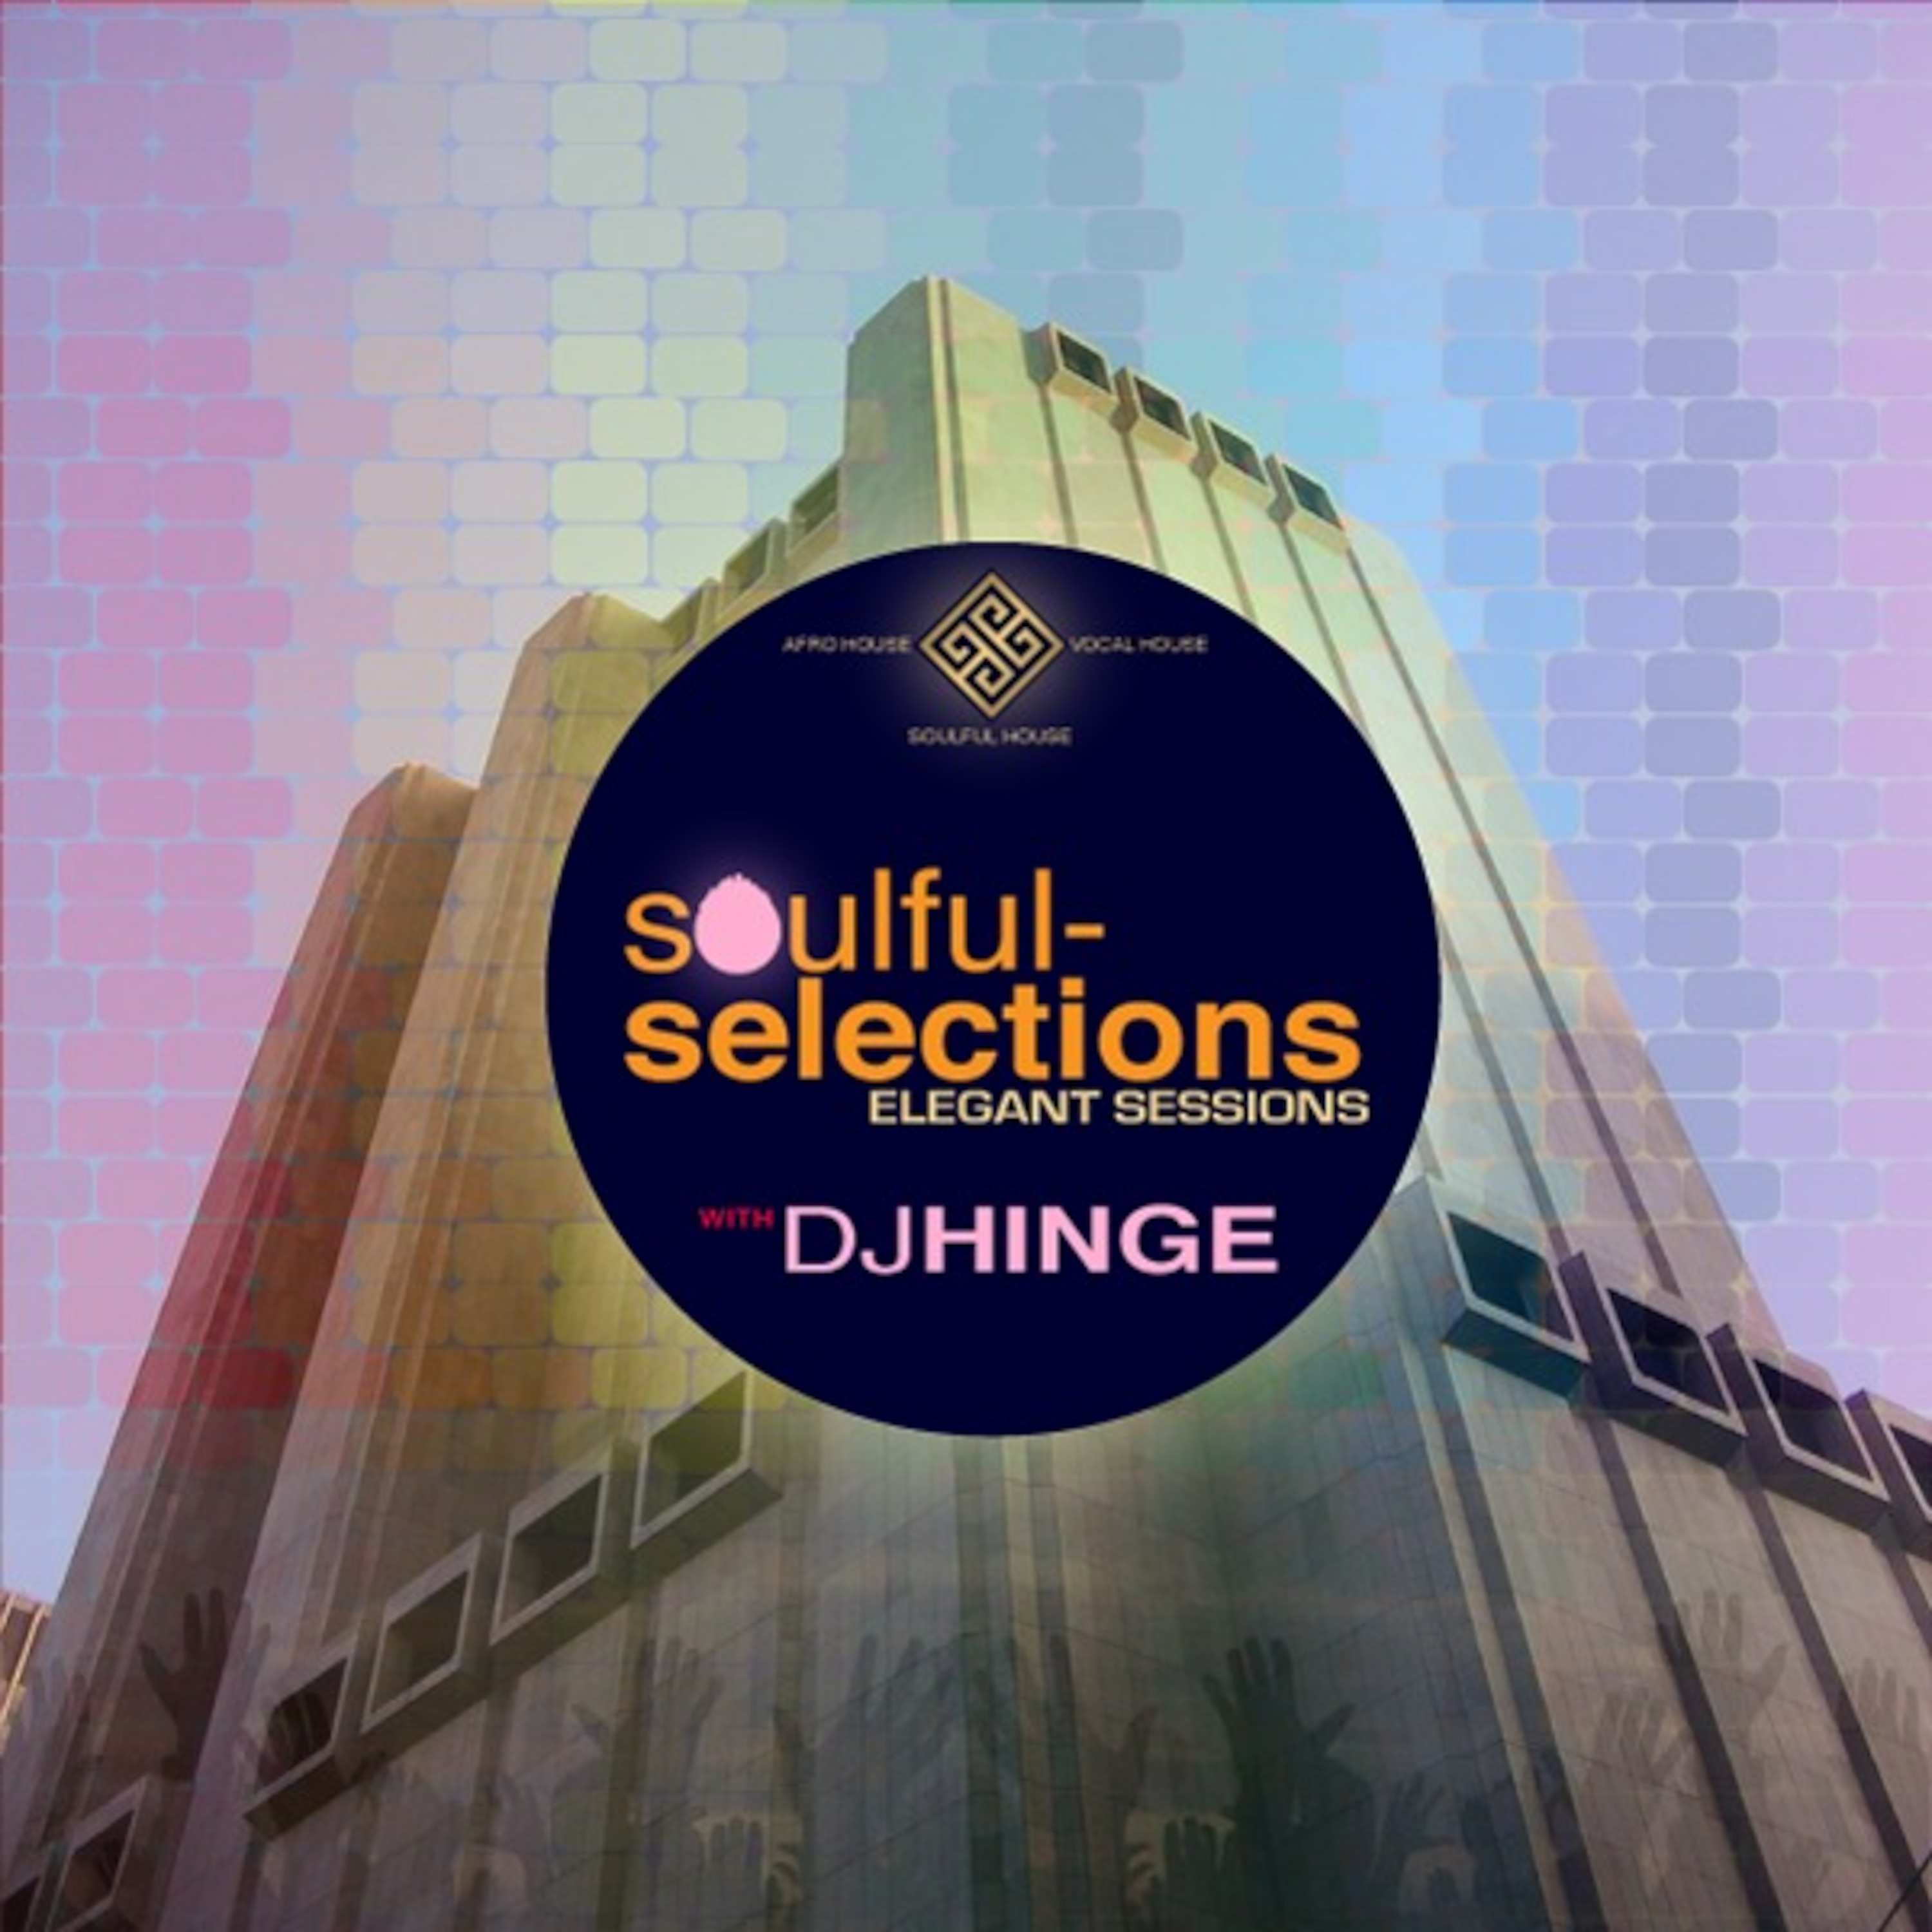 Soulful-Selections Elegant Session for 05-31-20